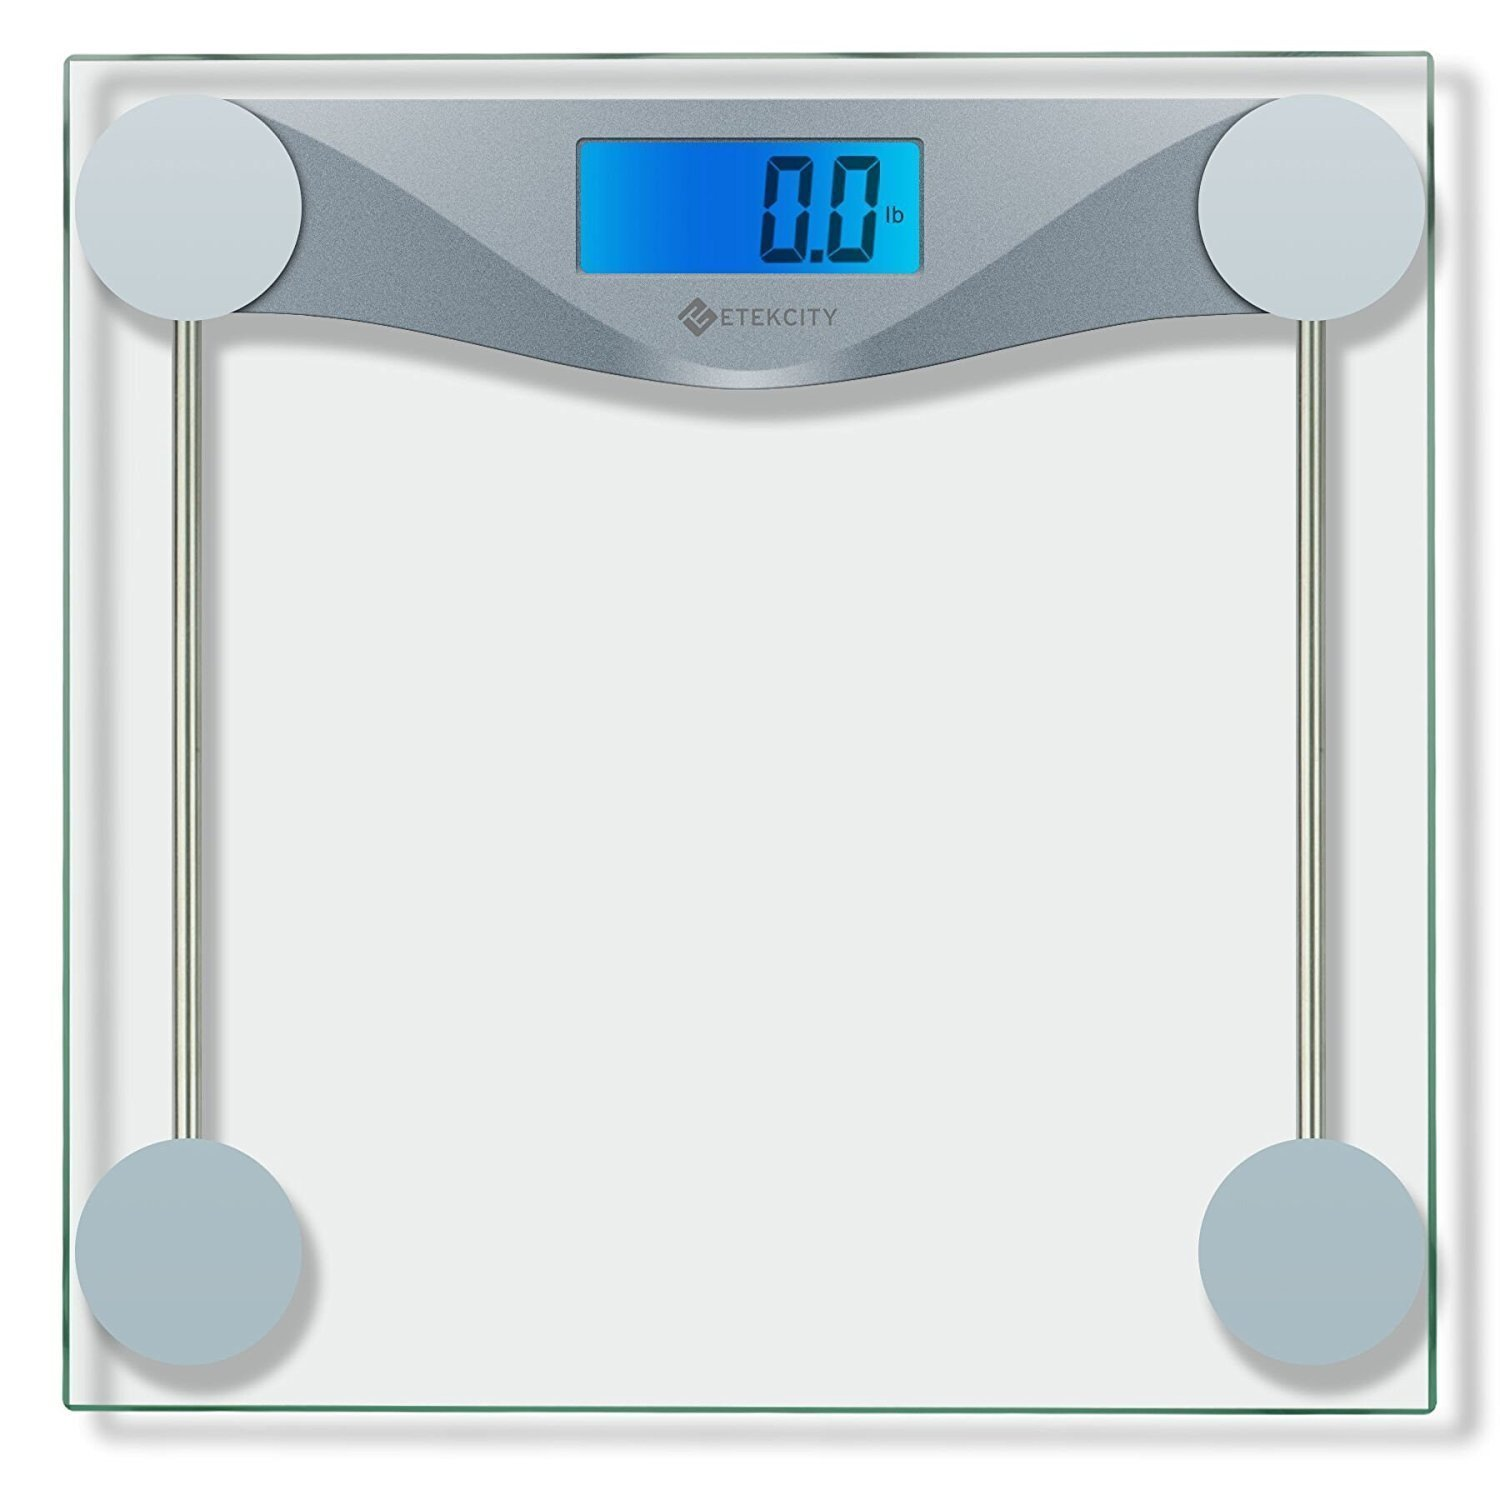 6 best and most accurate bathroom scales 3 6 Most Accurate Bathroom Scales - Body Composition Monitor for All